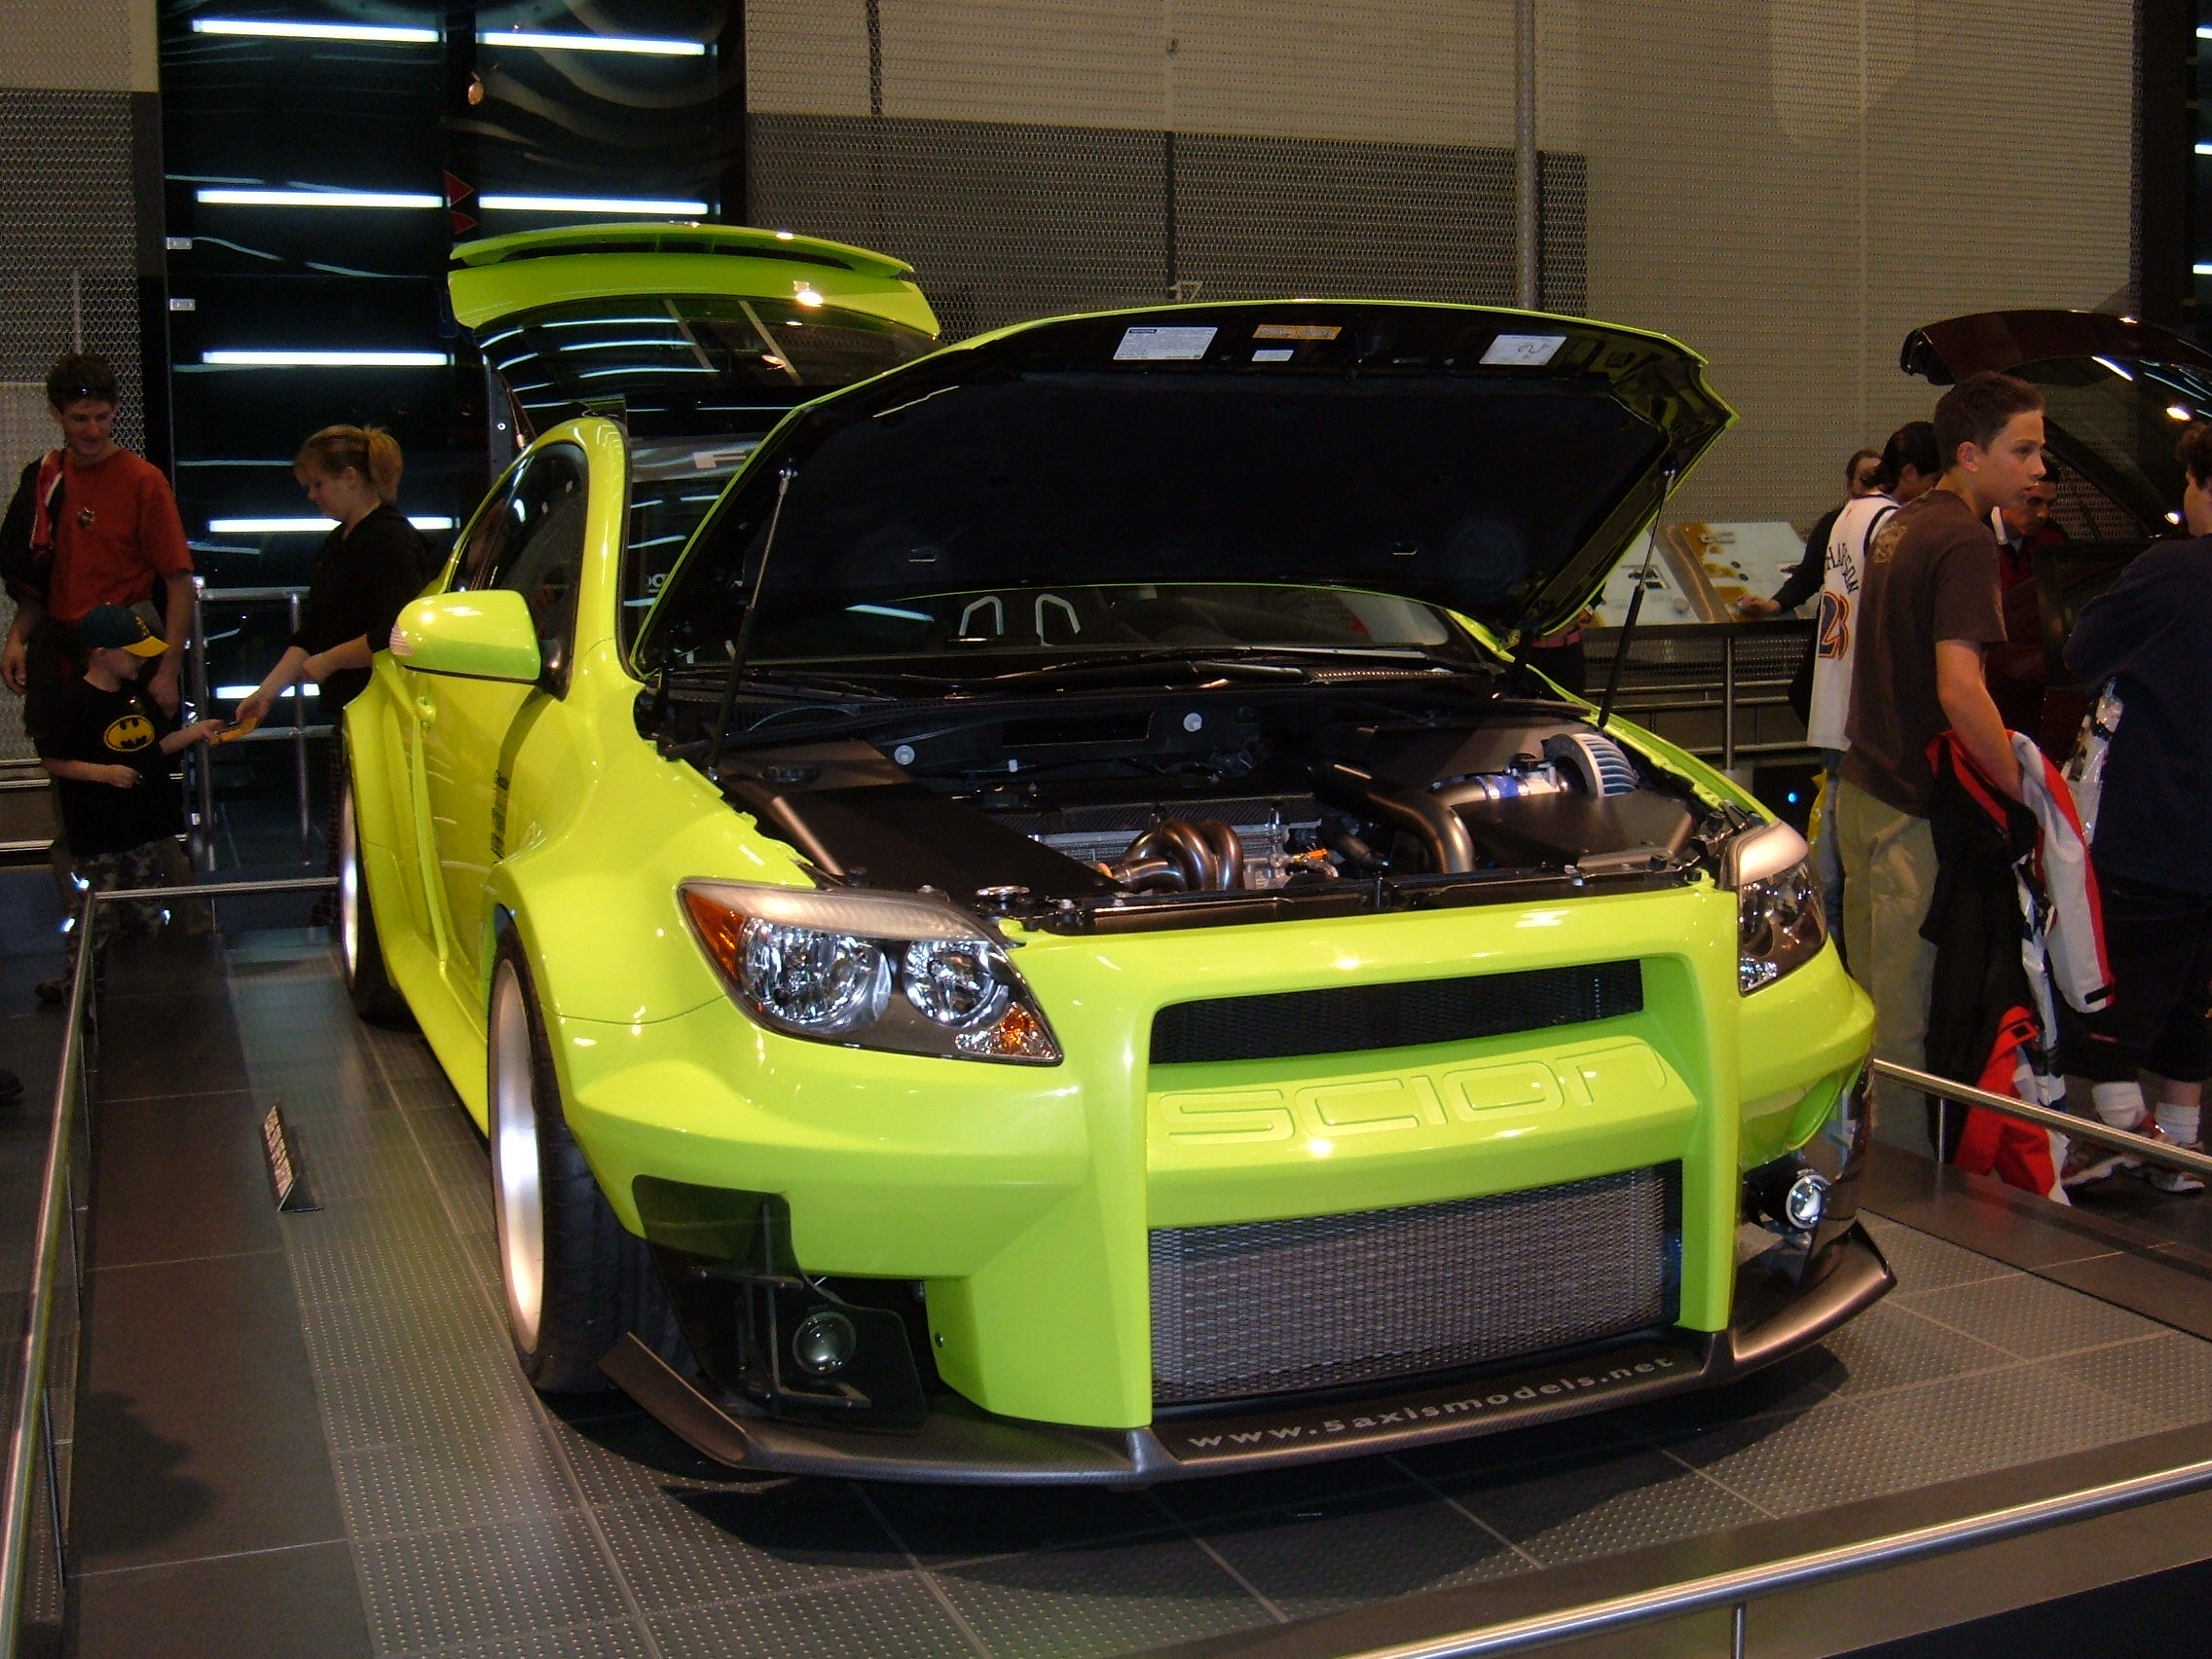 file 2005 yellow custom scion tc front jpg wikimedia commons. Black Bedroom Furniture Sets. Home Design Ideas